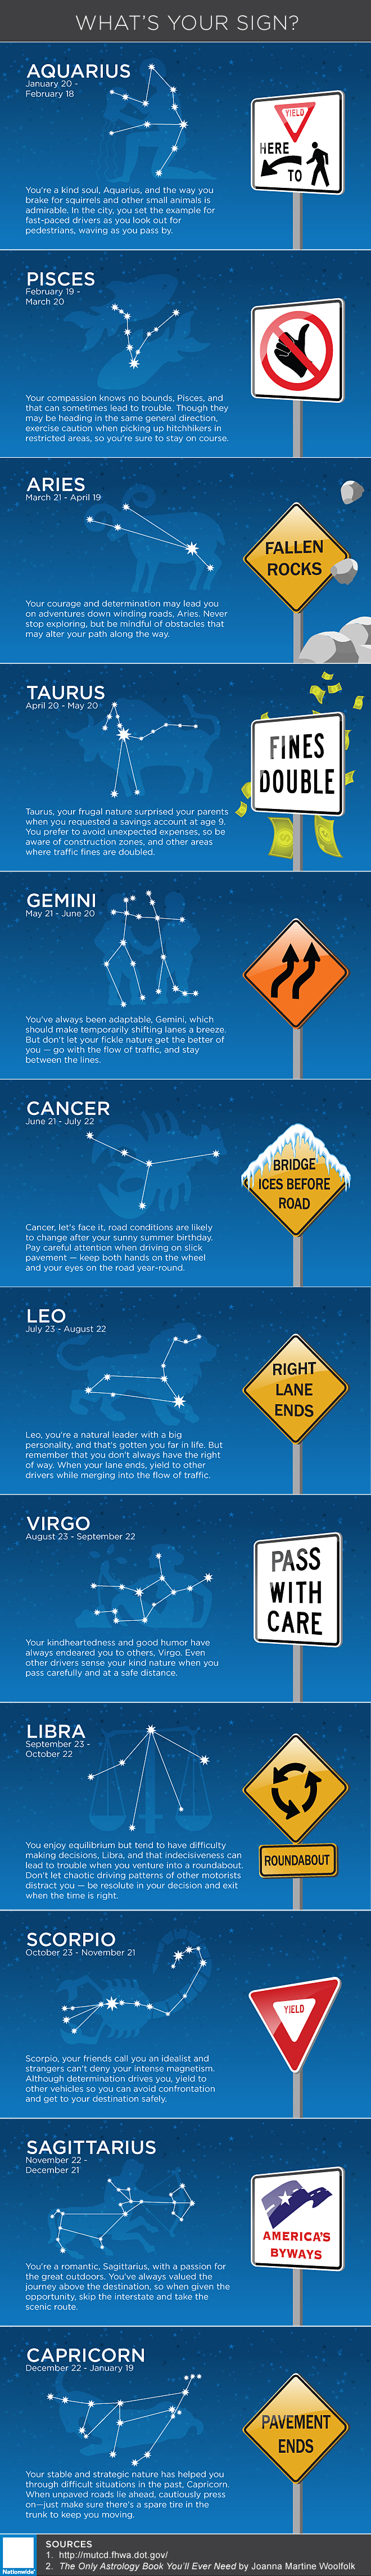 What's Your Sign? - Horoscope infographic from Nationwide.com